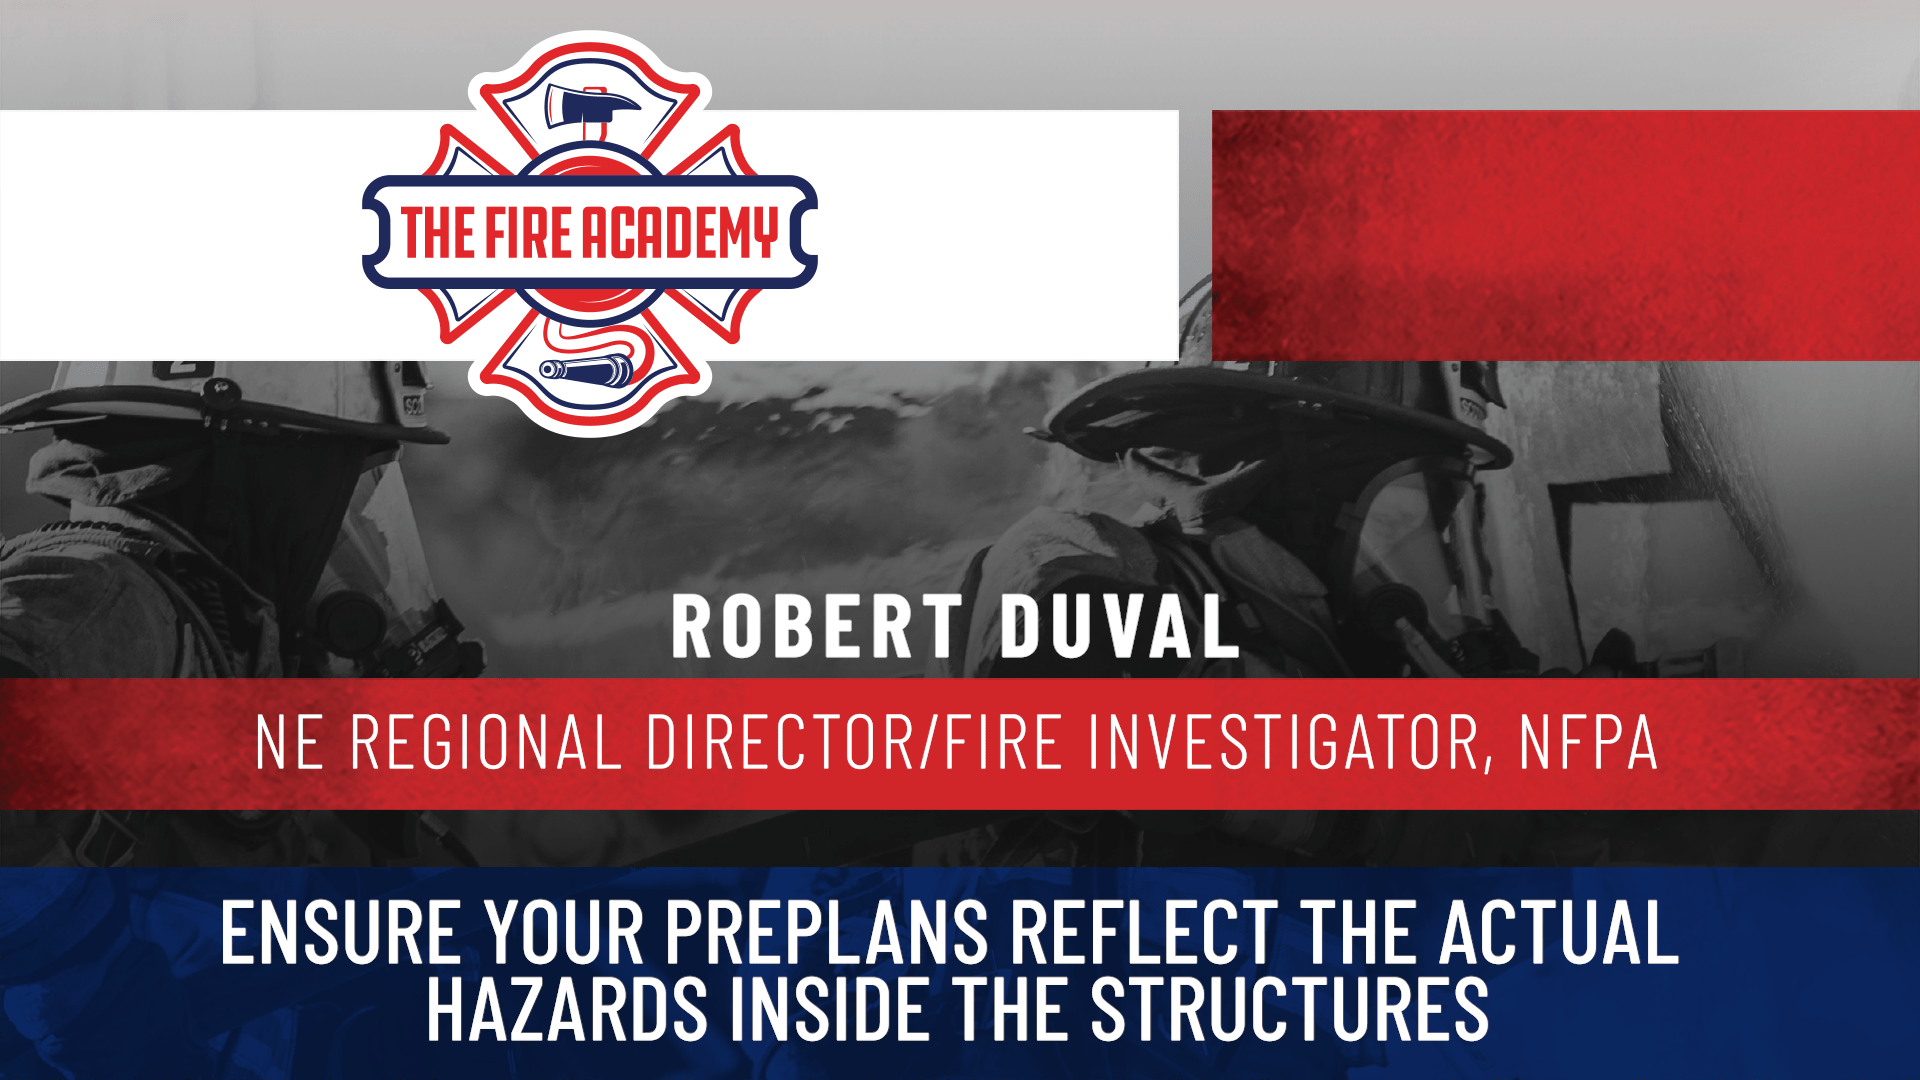 Ensure Your Preplans Reflect the Actual Hazards Inside the Structures